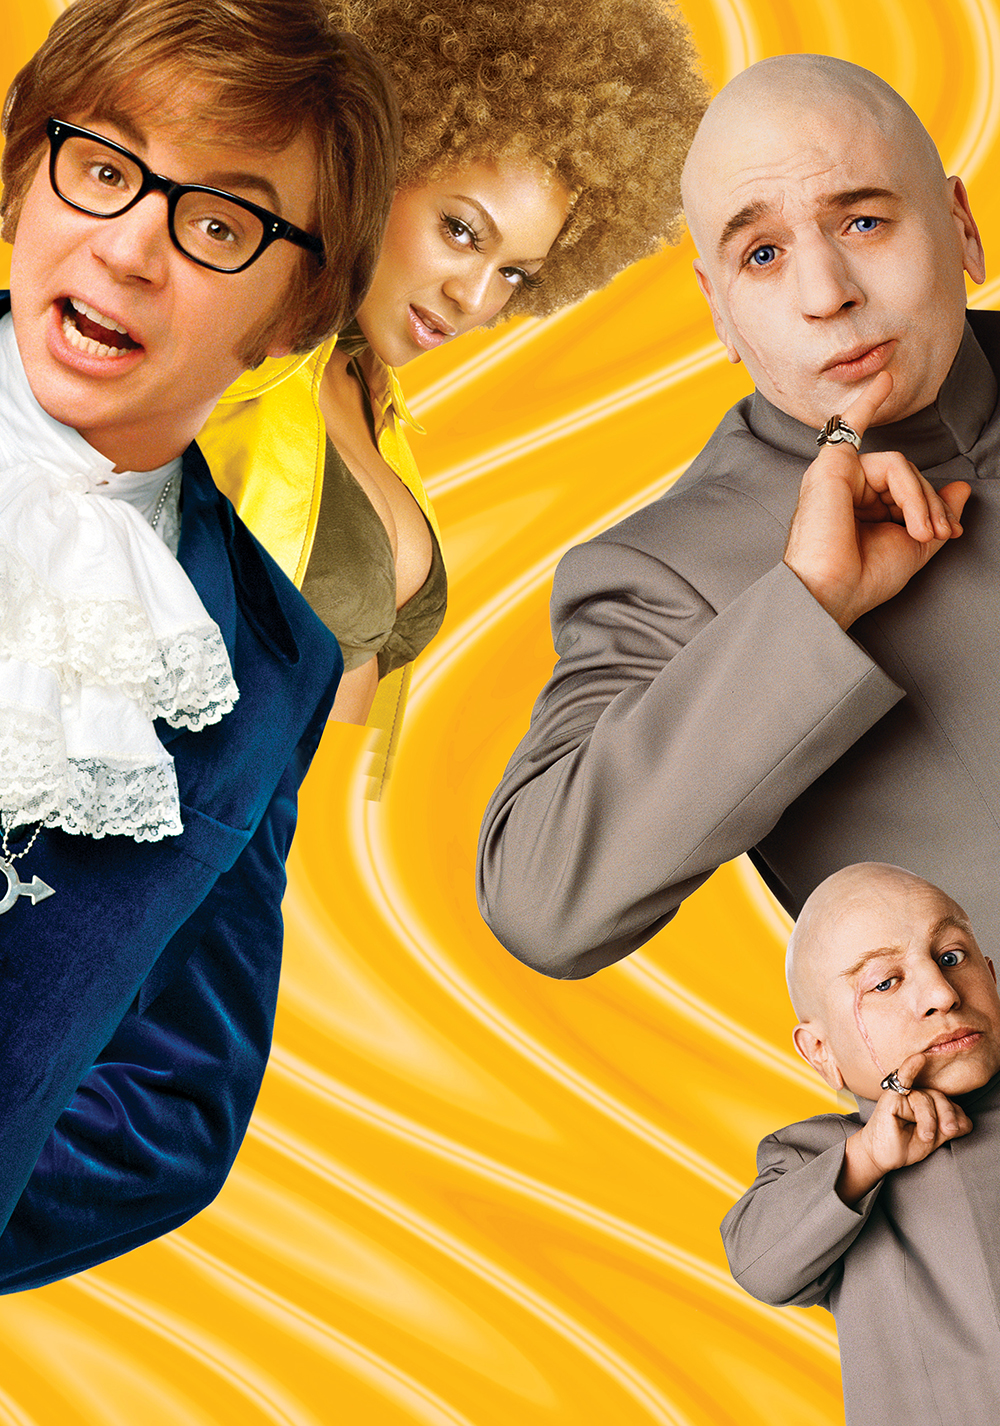 Mike myers austin powers in goldmember mini-me dr. Evil felicity.